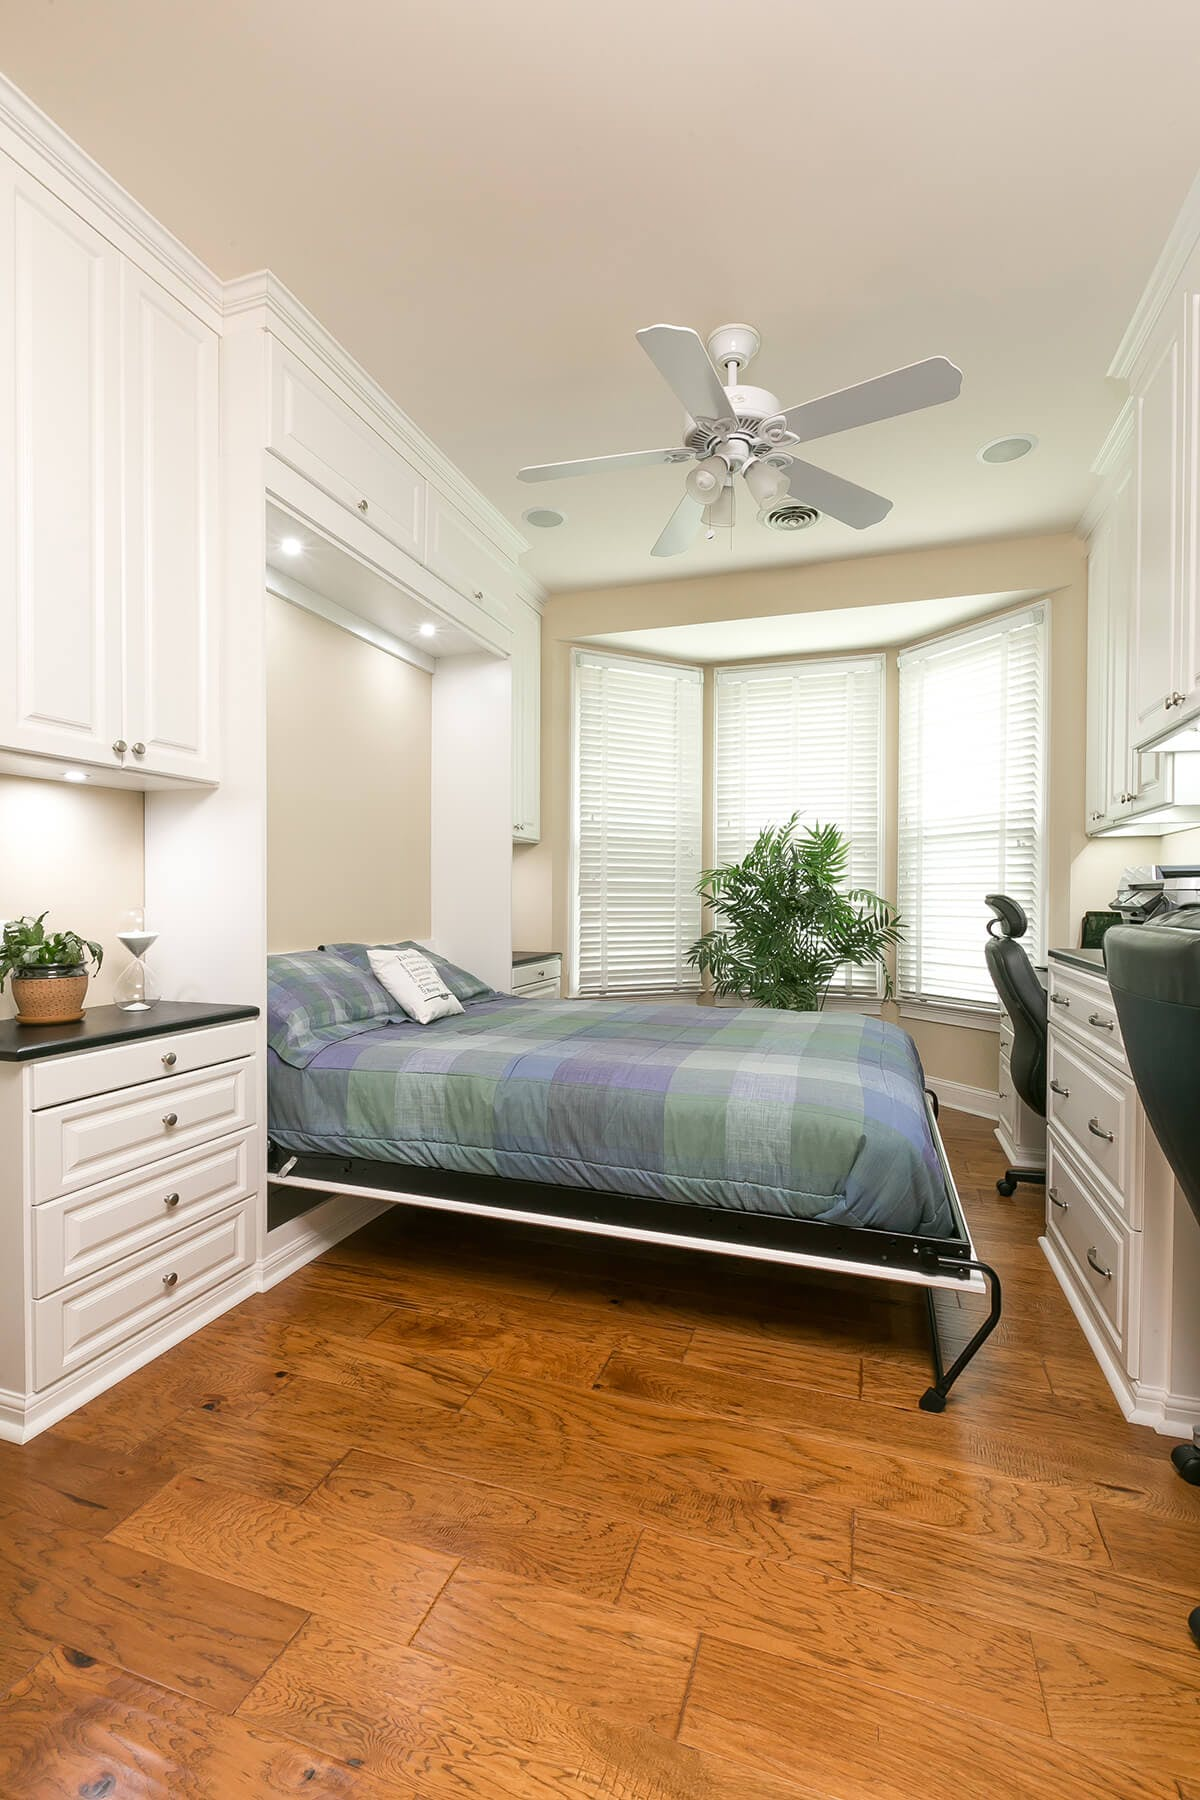 Wall Beds And Murphy Beds Cabinet Design Closet Factory